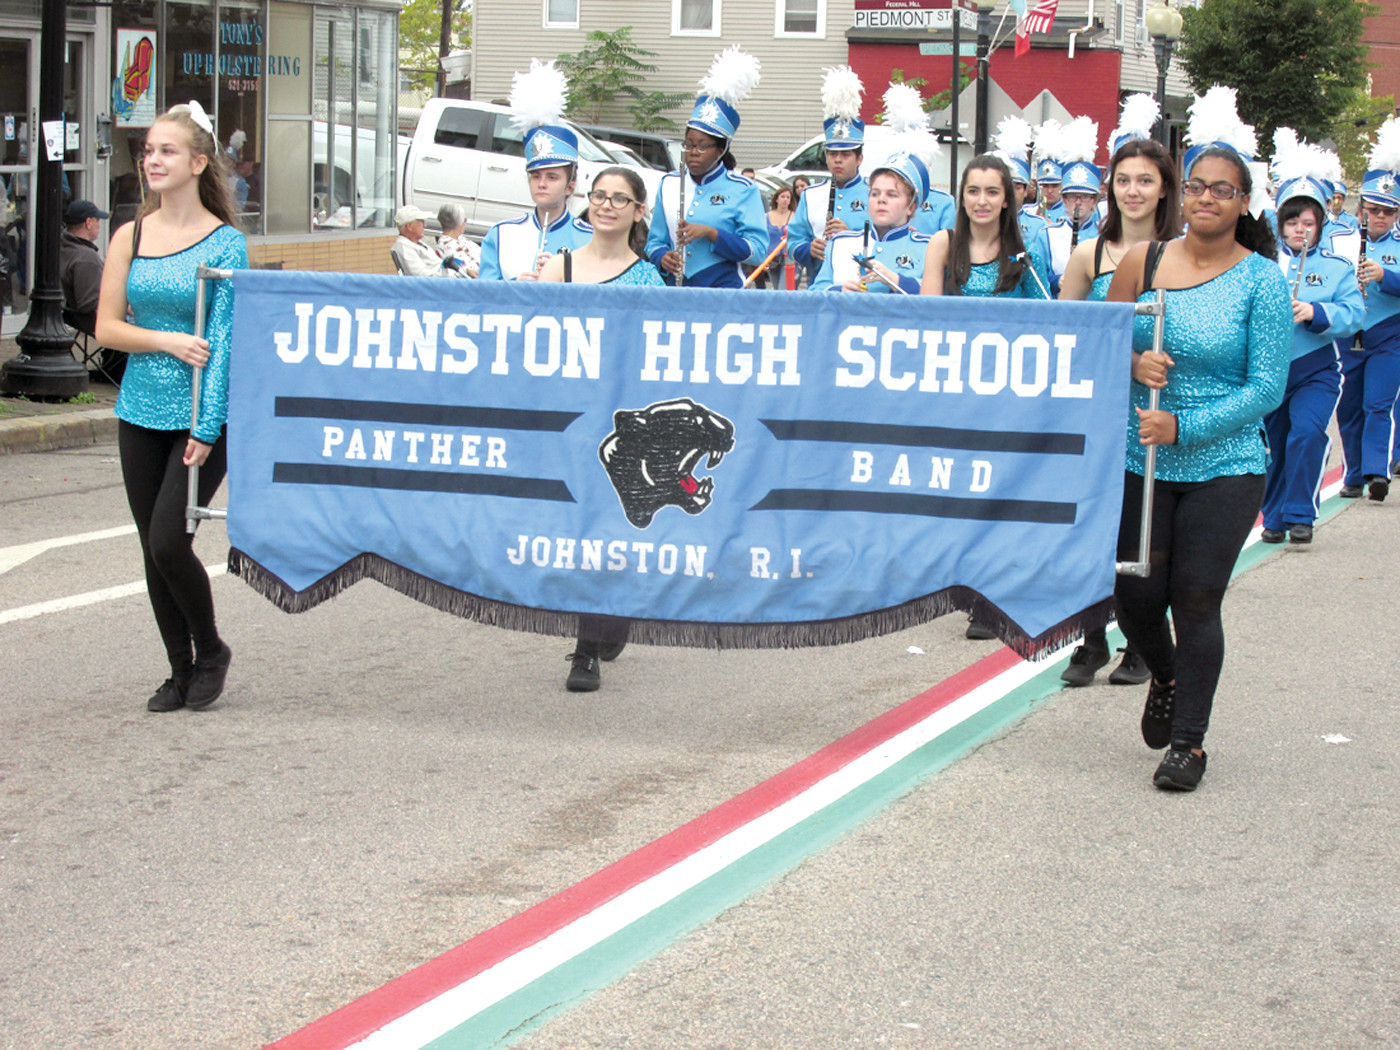 PROUD PANTHERS: The national award-winning Johnston High School marching Panther Band showed its stuff Sunday during the annual Columbus Day Parade on Providence's Federal Hill.